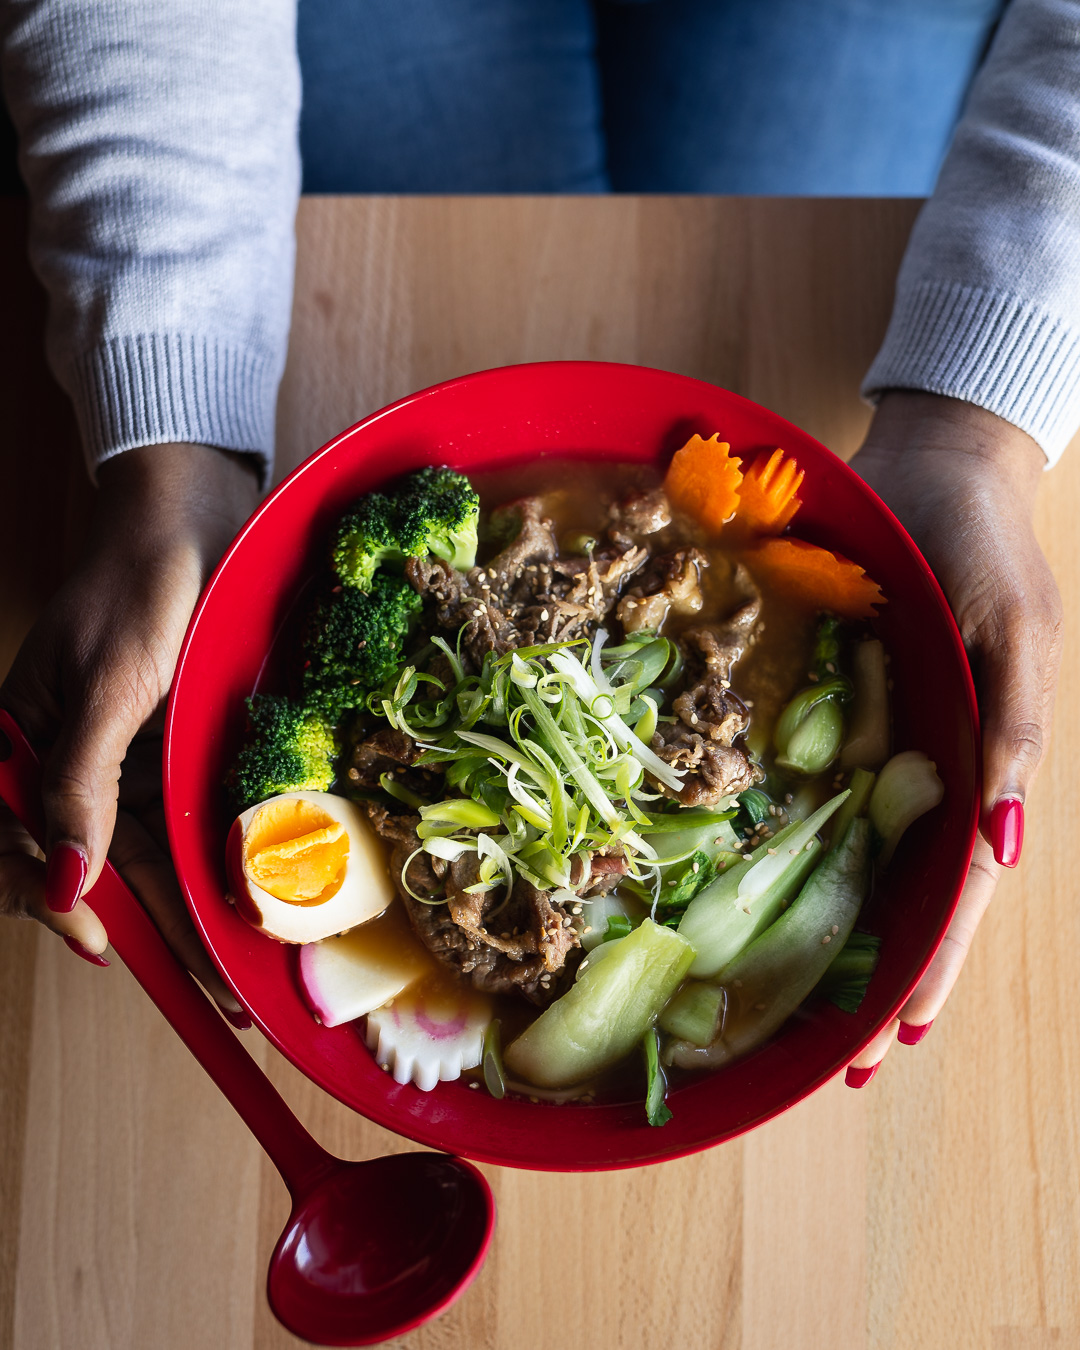 Restaurant photographer - Kamile Kave - Customer holding Poke Bowl at Sushi & Poke Restaurant.jpg